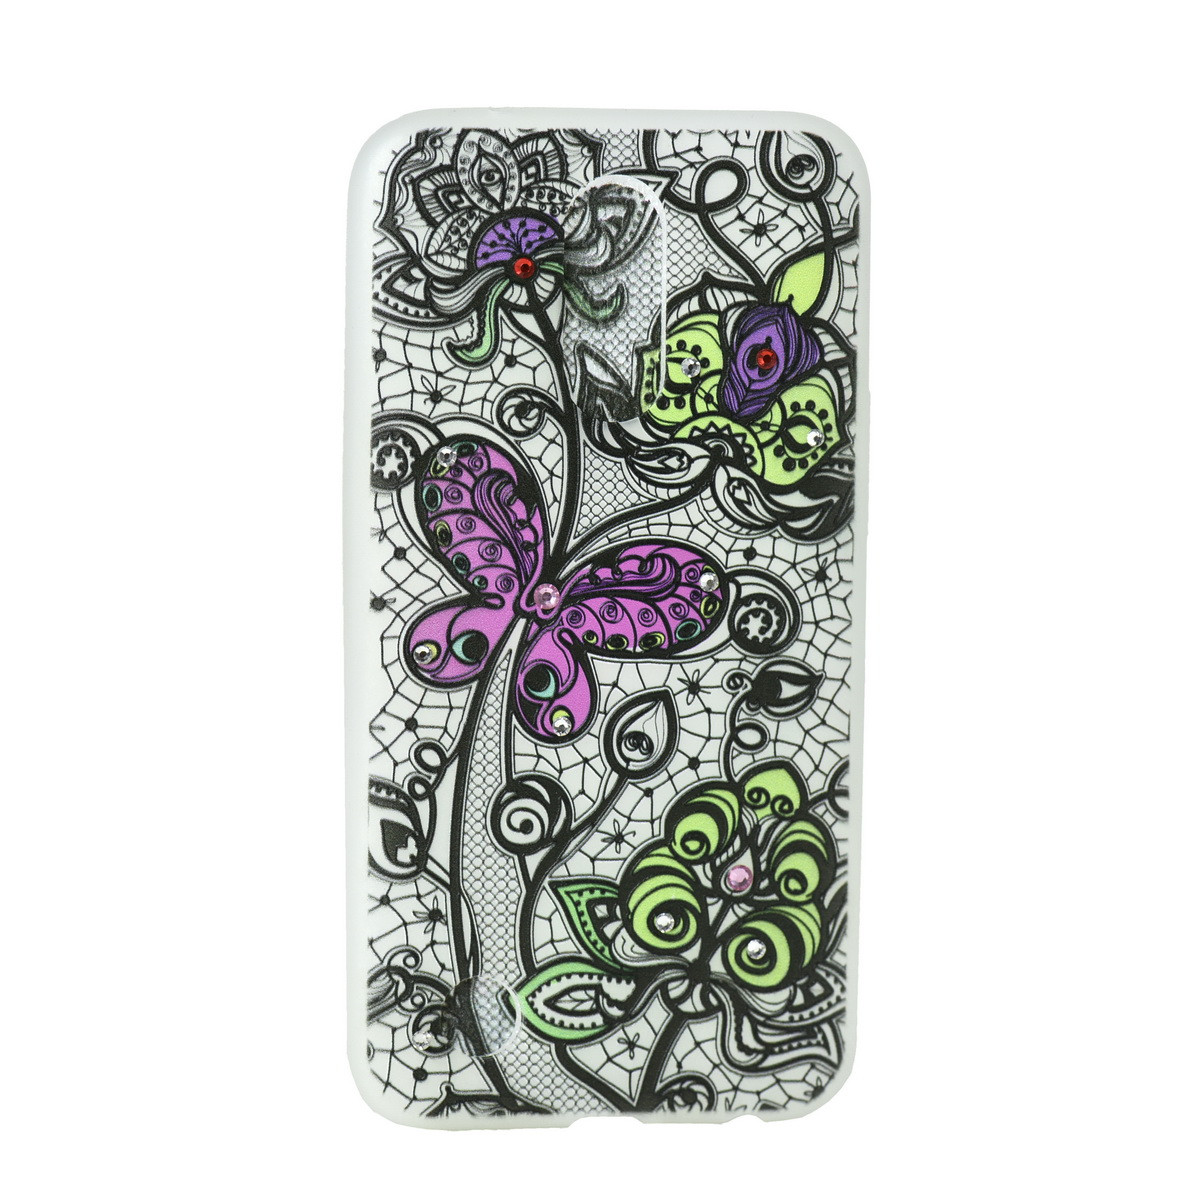 Чехол для LG K10 (2017) M250 back cover Protective Case Buttefly Clear/mix color